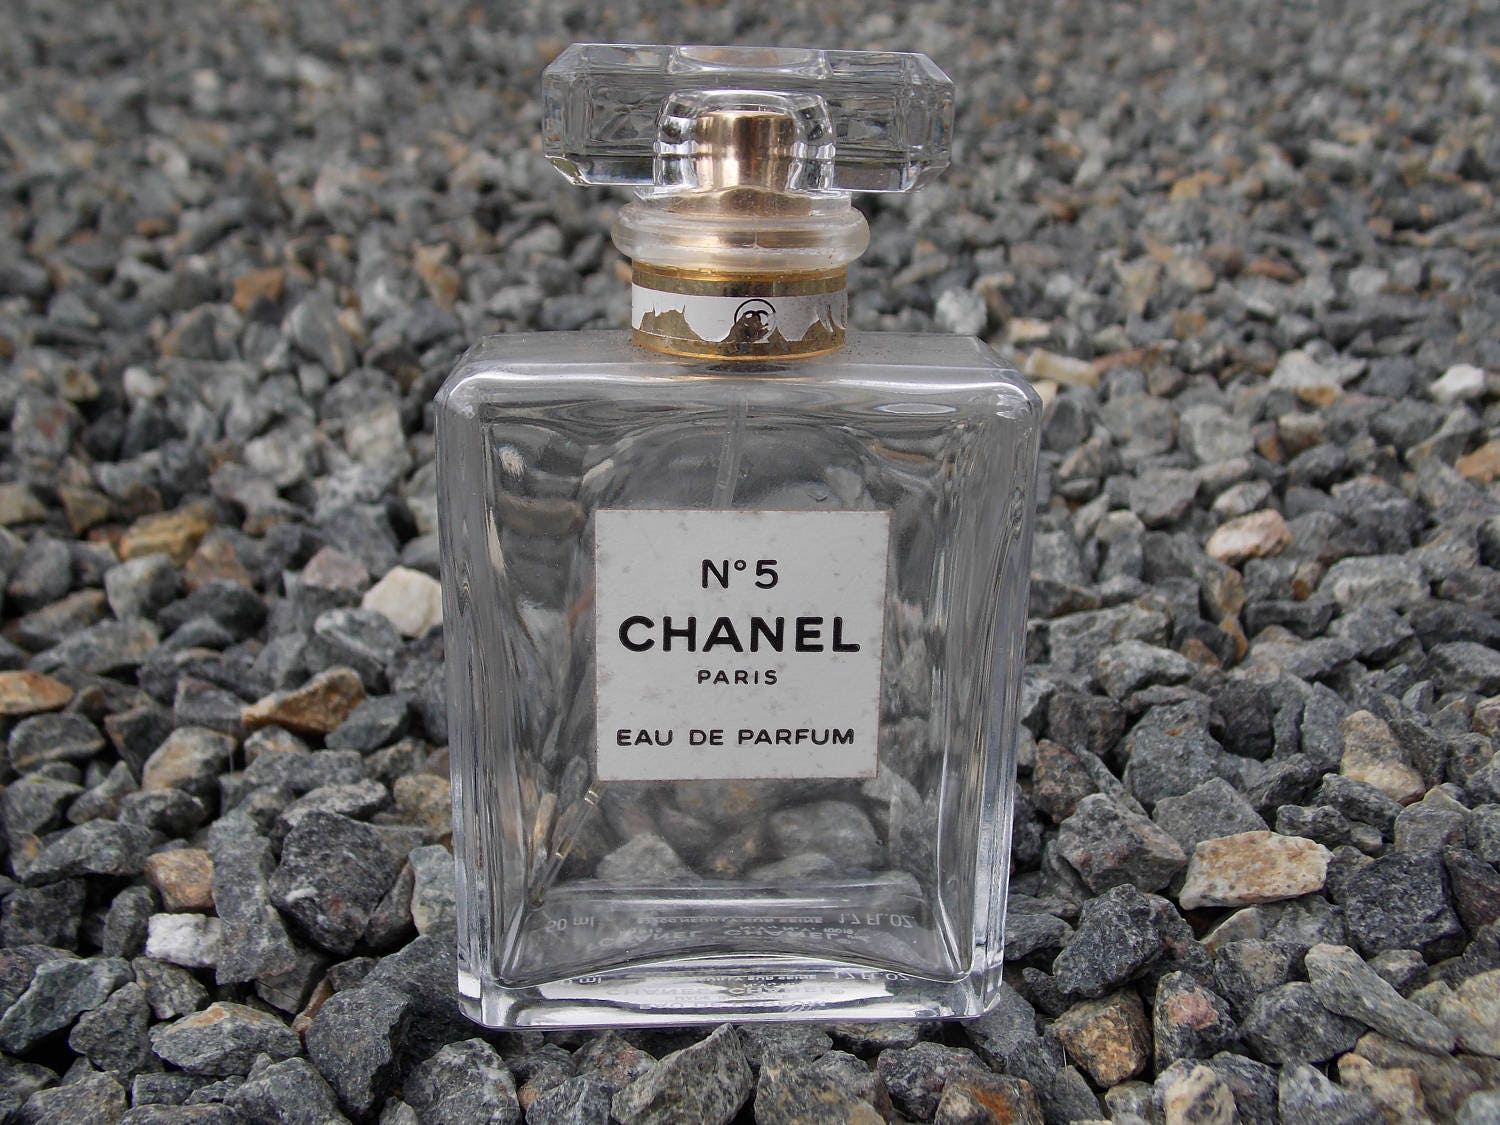 chanel no 5 paris eau de parfum 50ml bottle. Black Bedroom Furniture Sets. Home Design Ideas